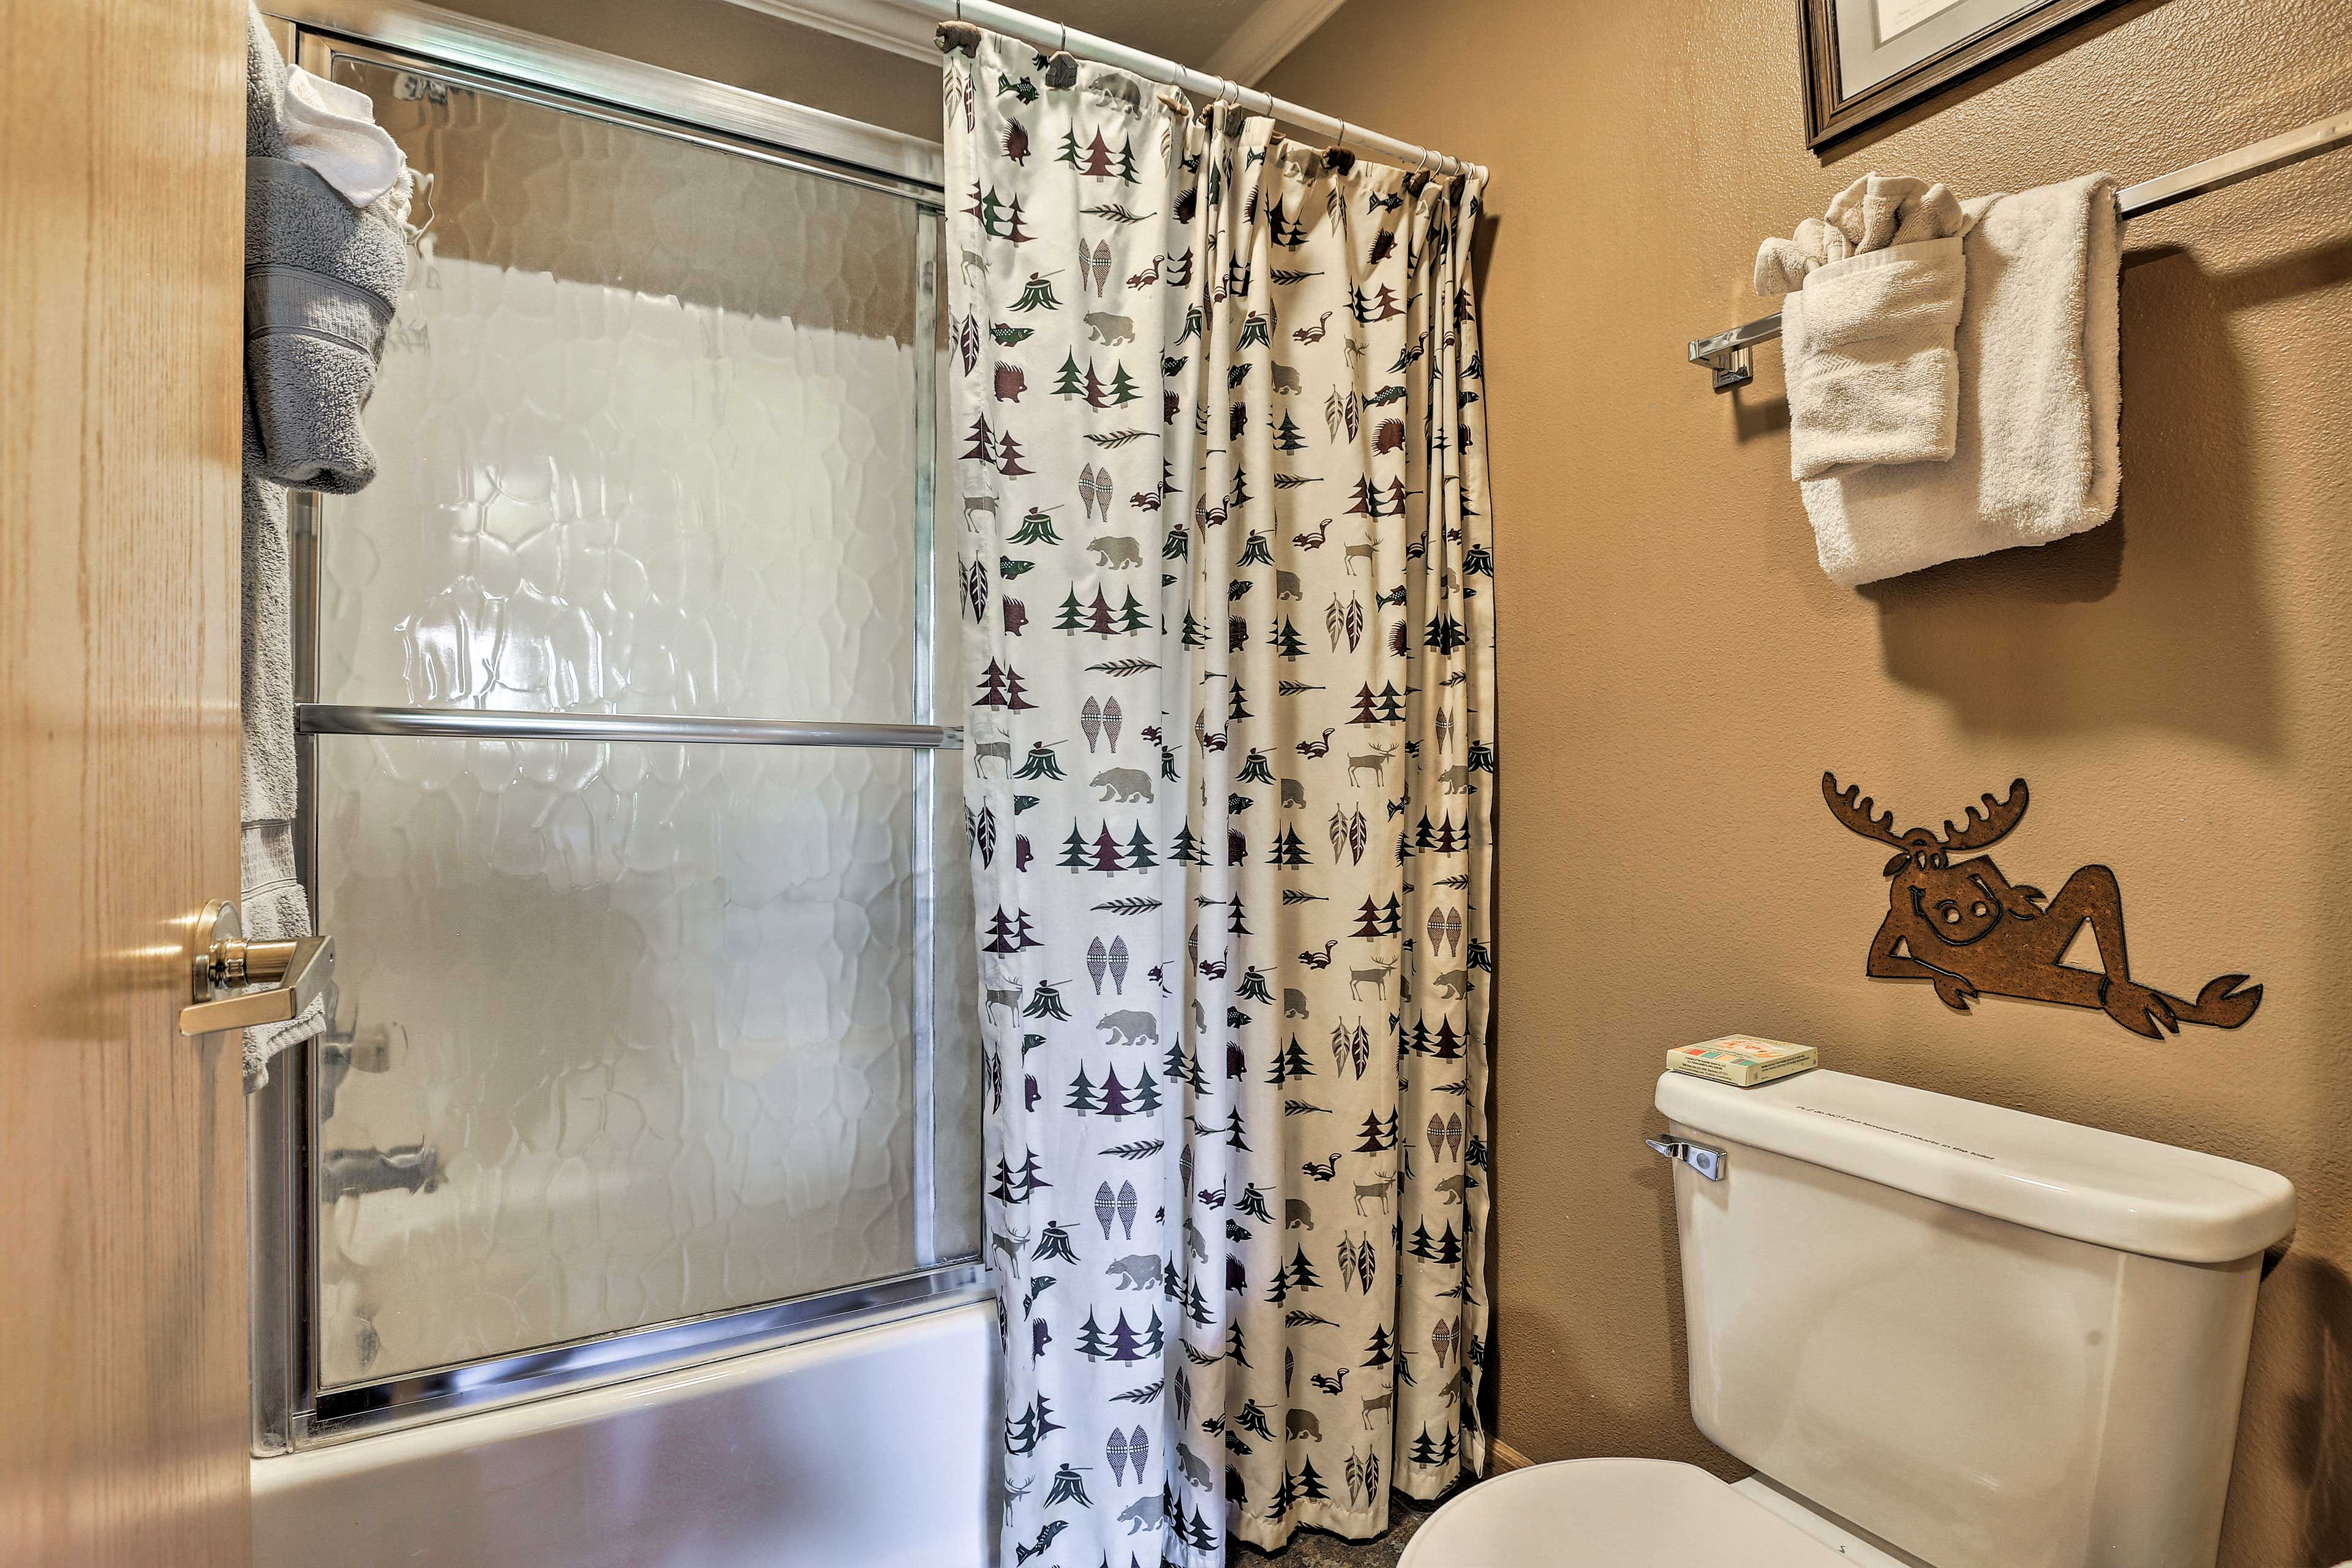 Rinse off the lingering lake water in the shower/tub combo.